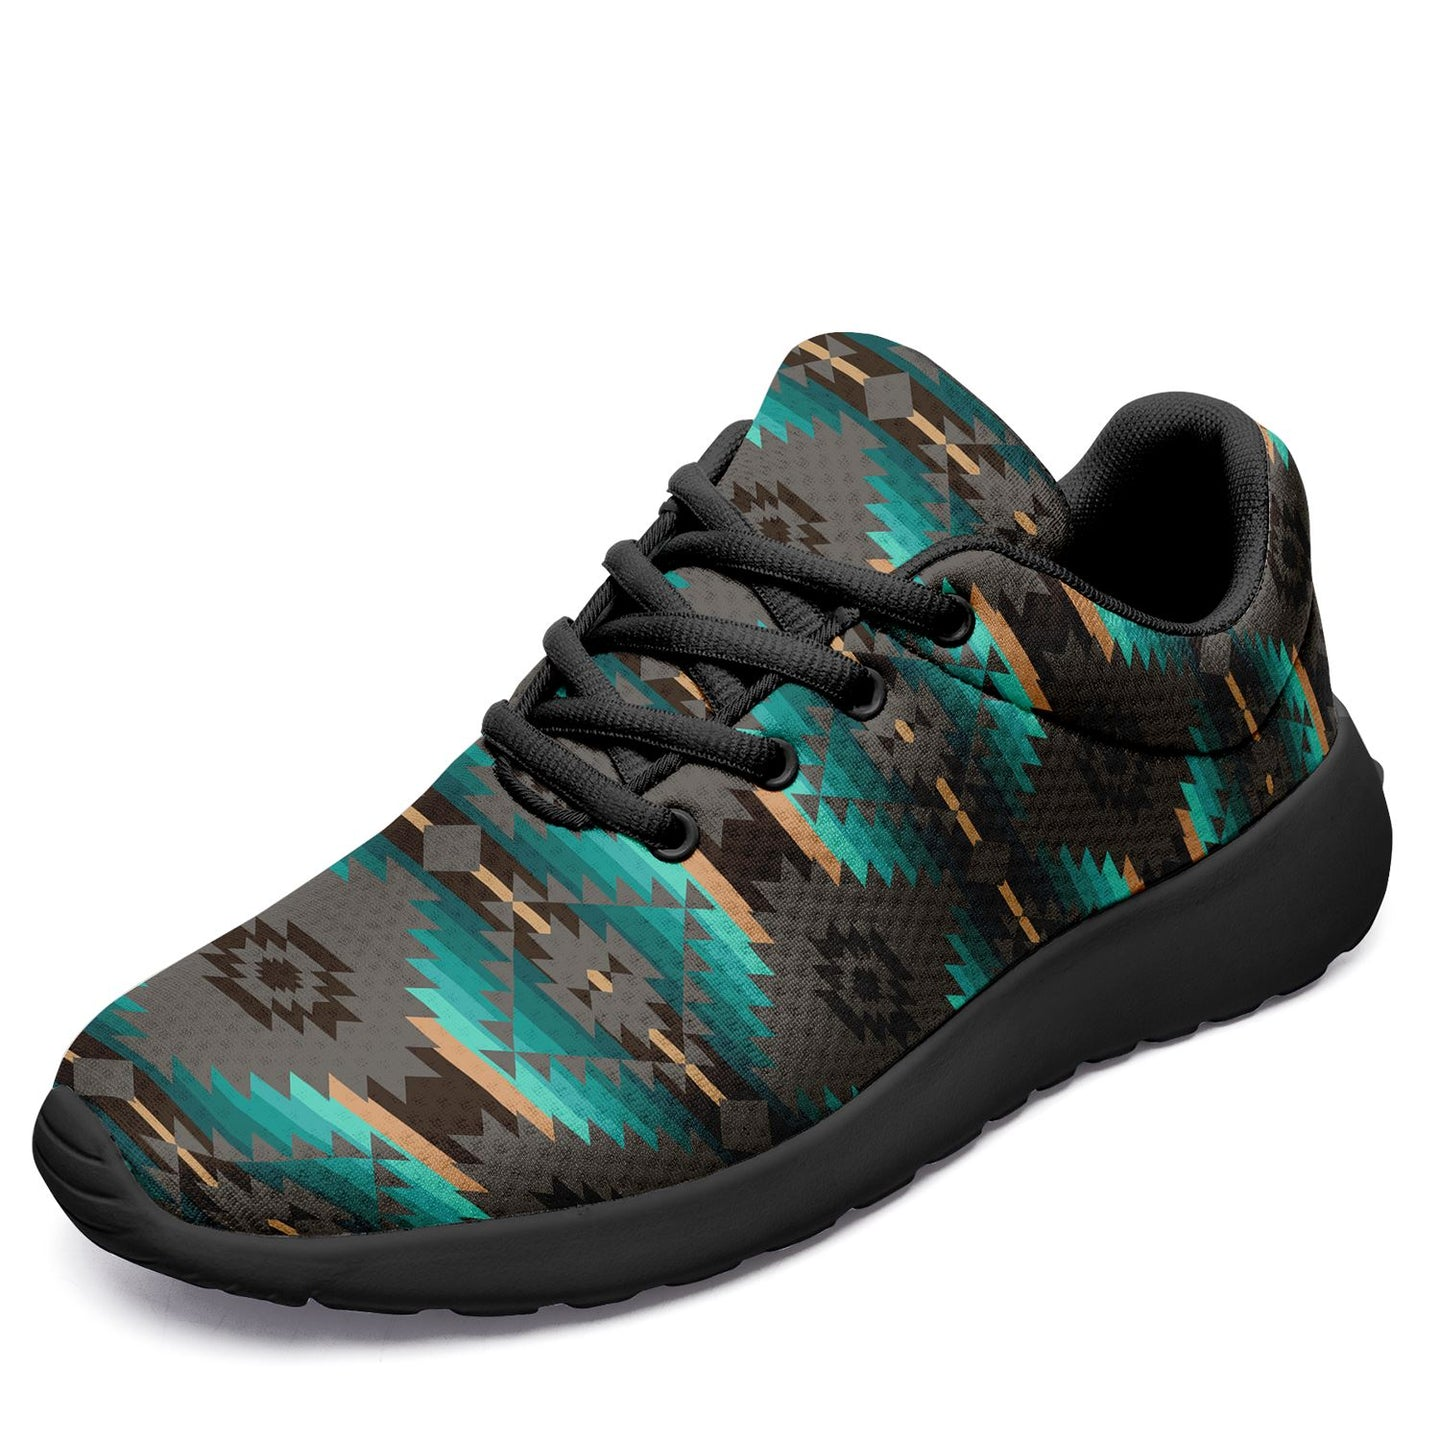 Cree Confederacy Ikkaayi Sport Sneakers 49 Dzine US Women 4.5 / US Youth 3.5 / EUR 35 Black Sole